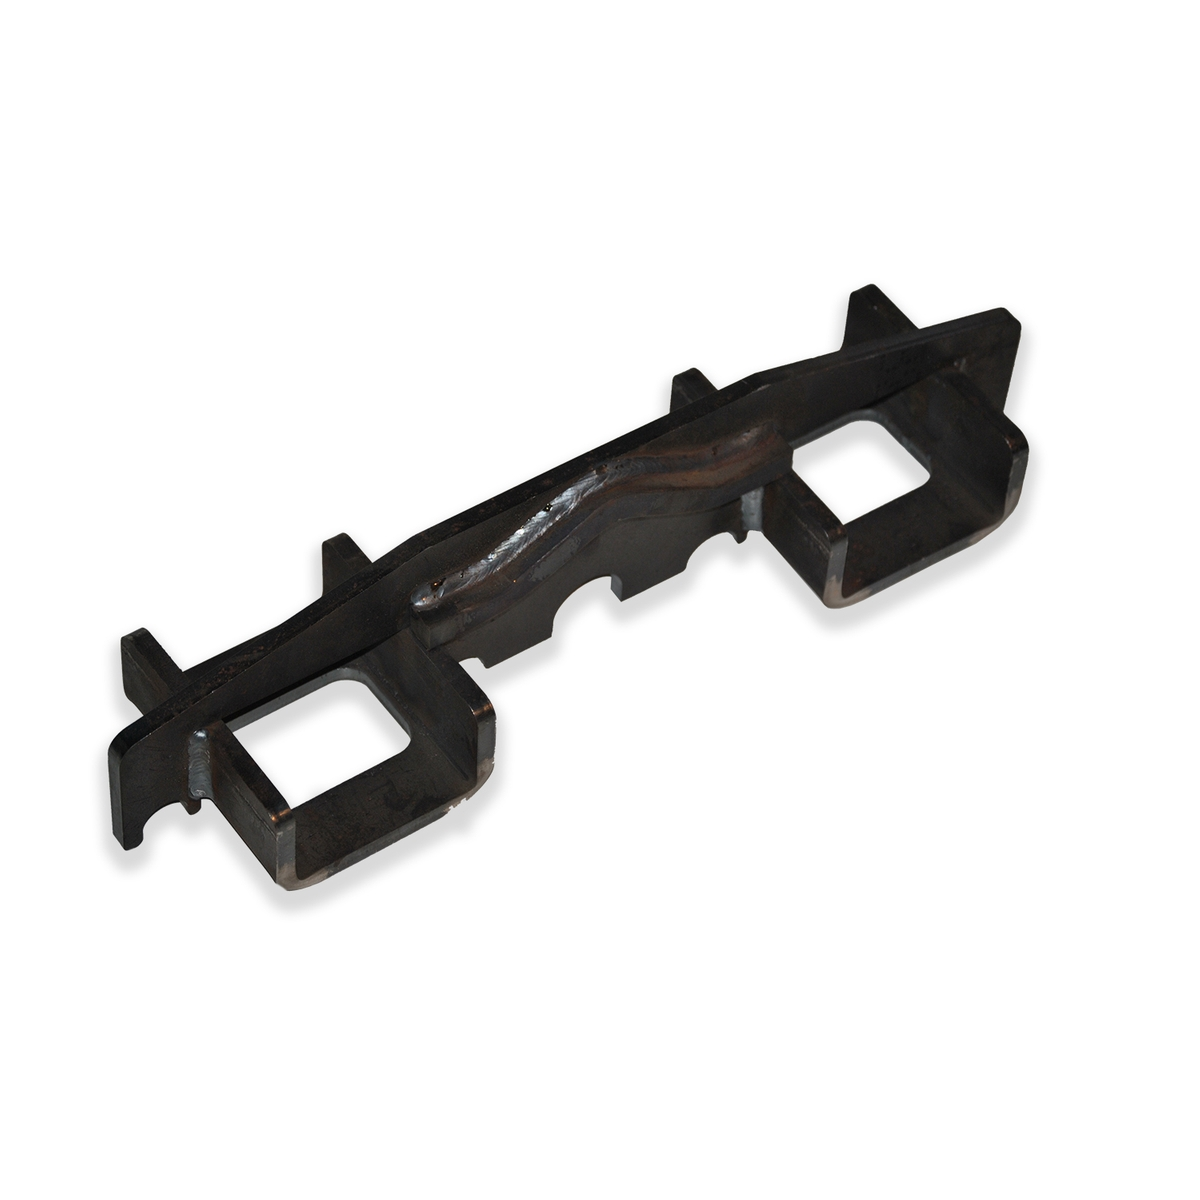 HEAVY DUTY KEYPLATE